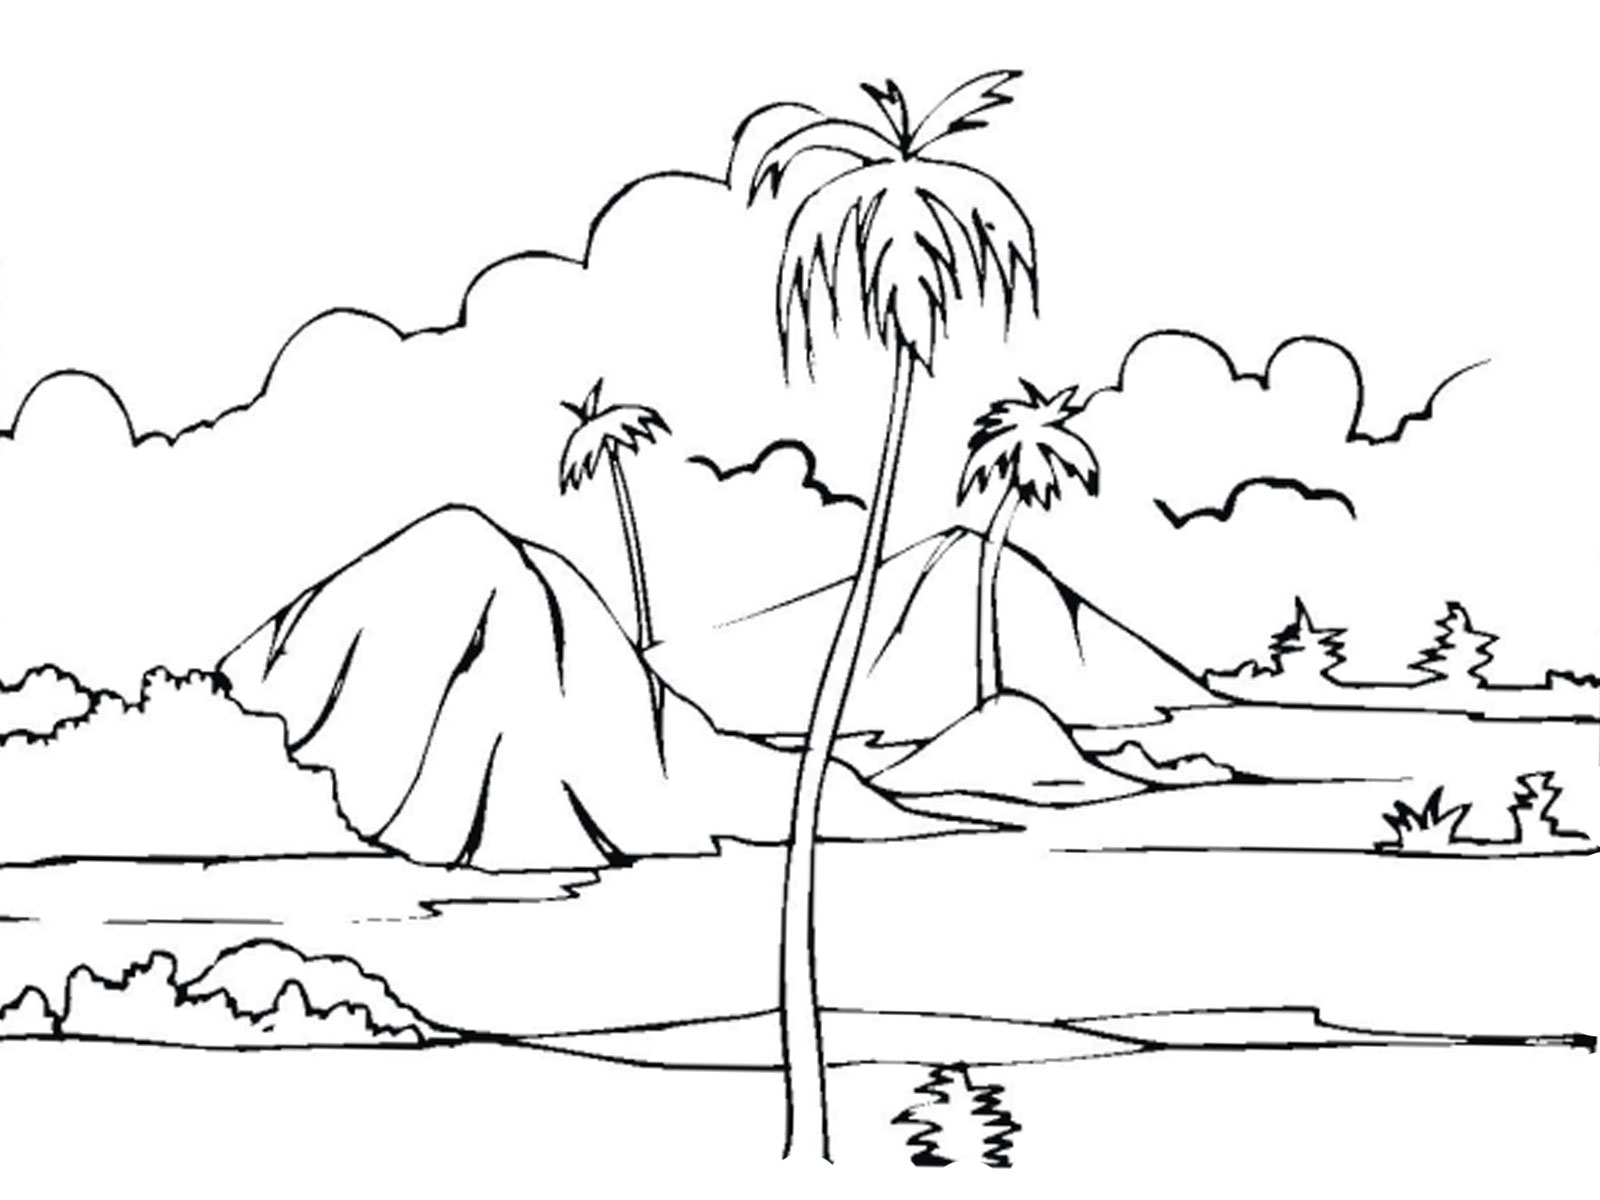 1600x1200 House Drawing And Colouring Pages For Kids. Sea And Seashore